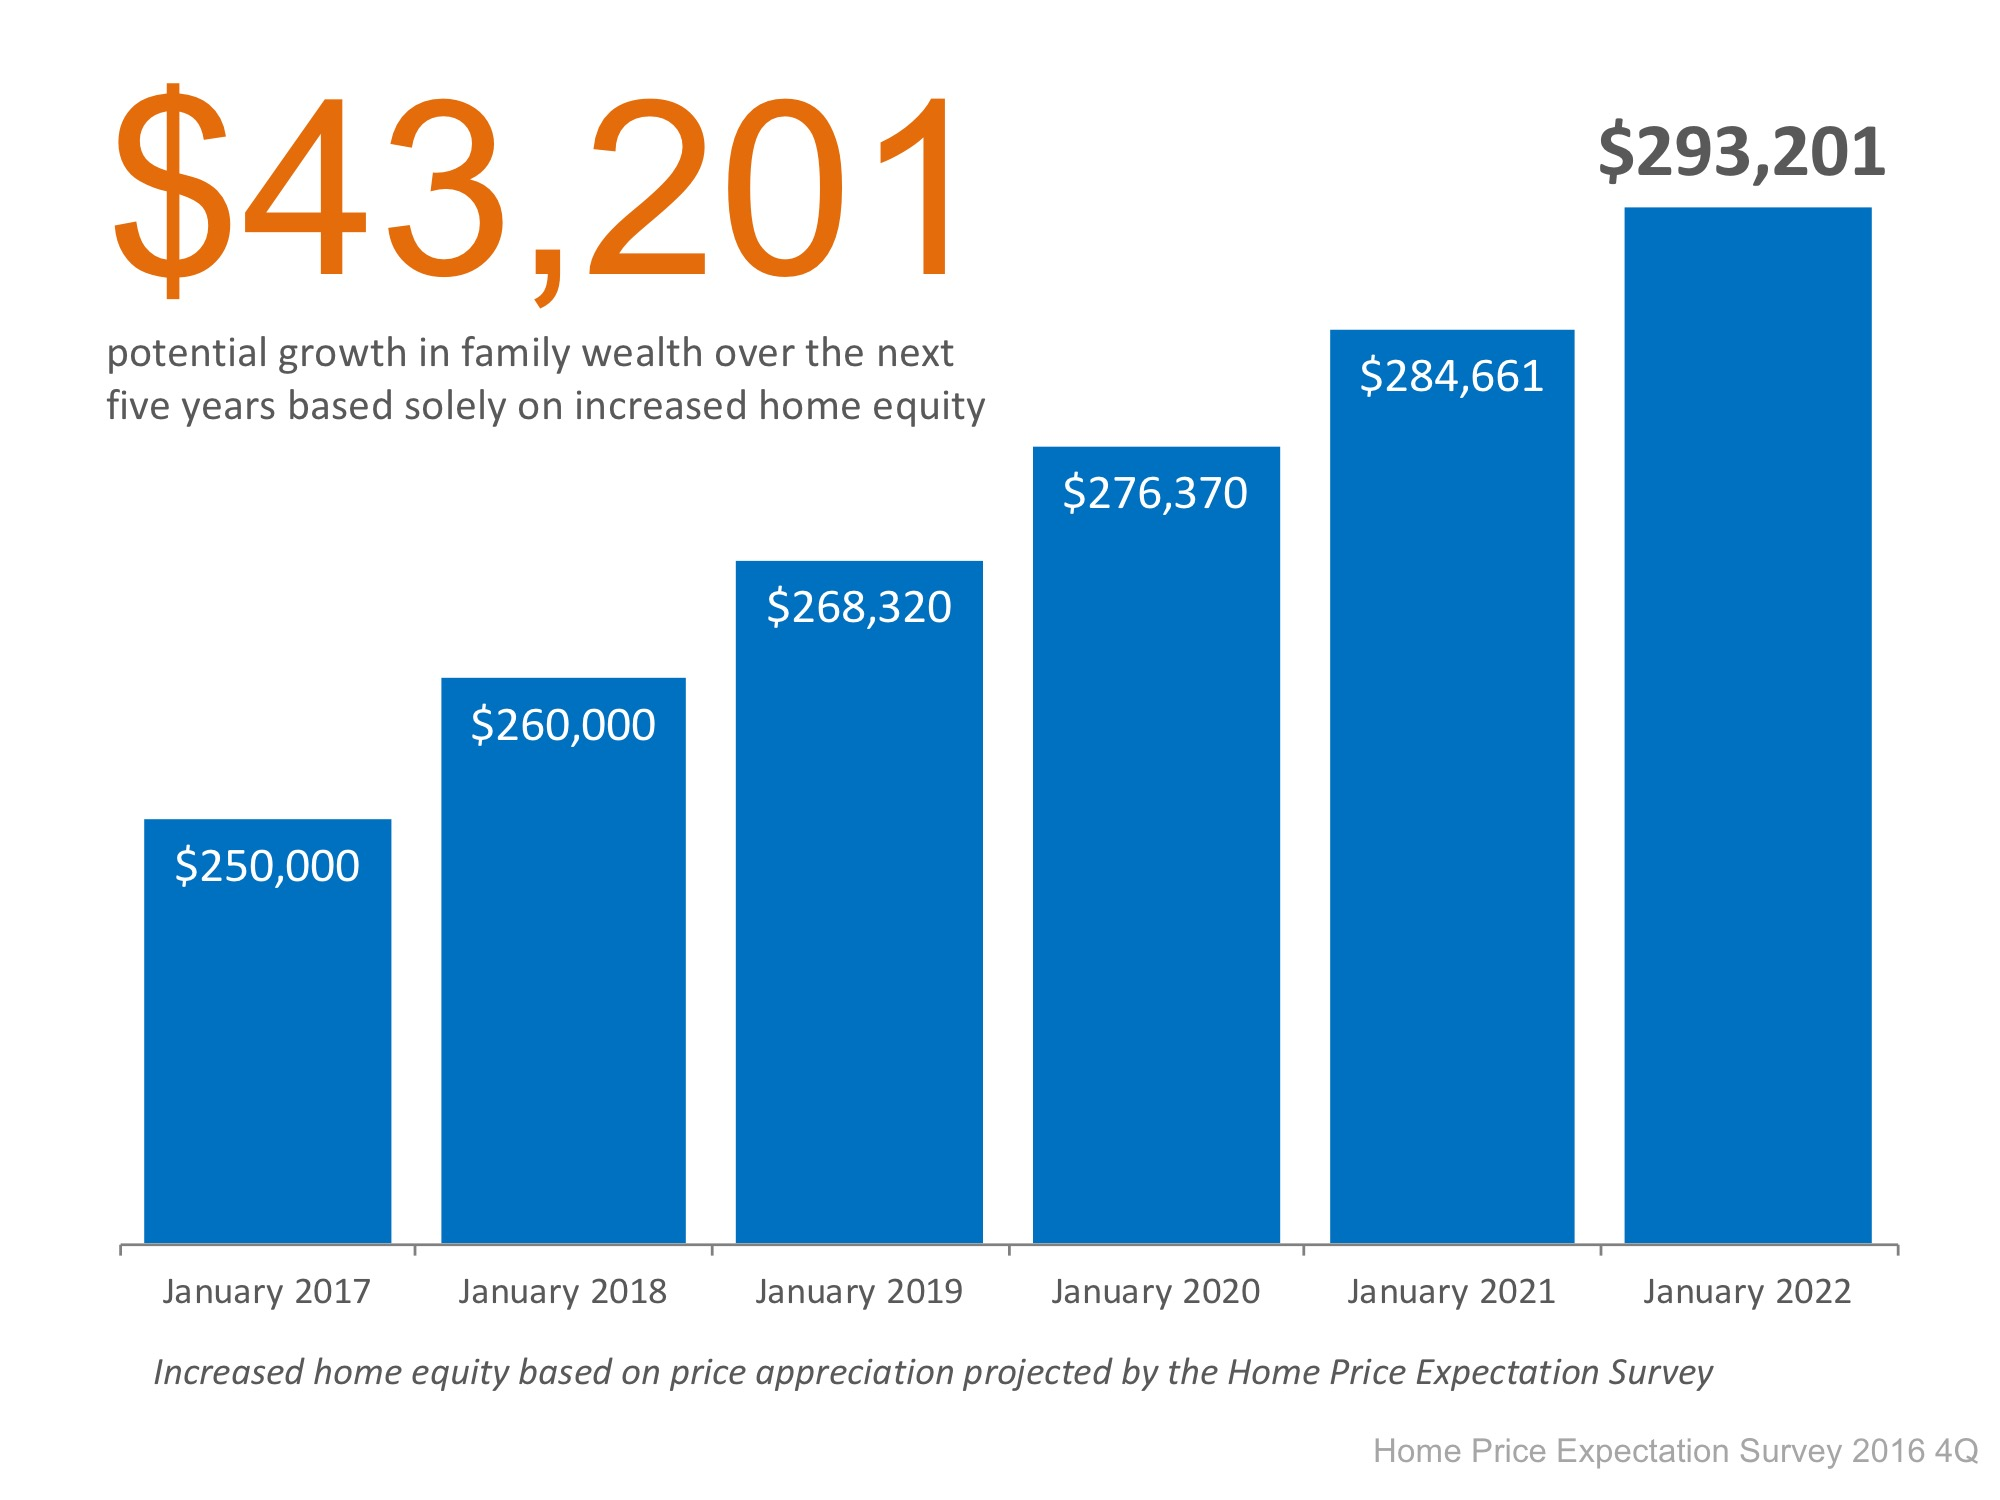 Building Your Family's Wealth Over the Next 5 Years   Simplifying The Market